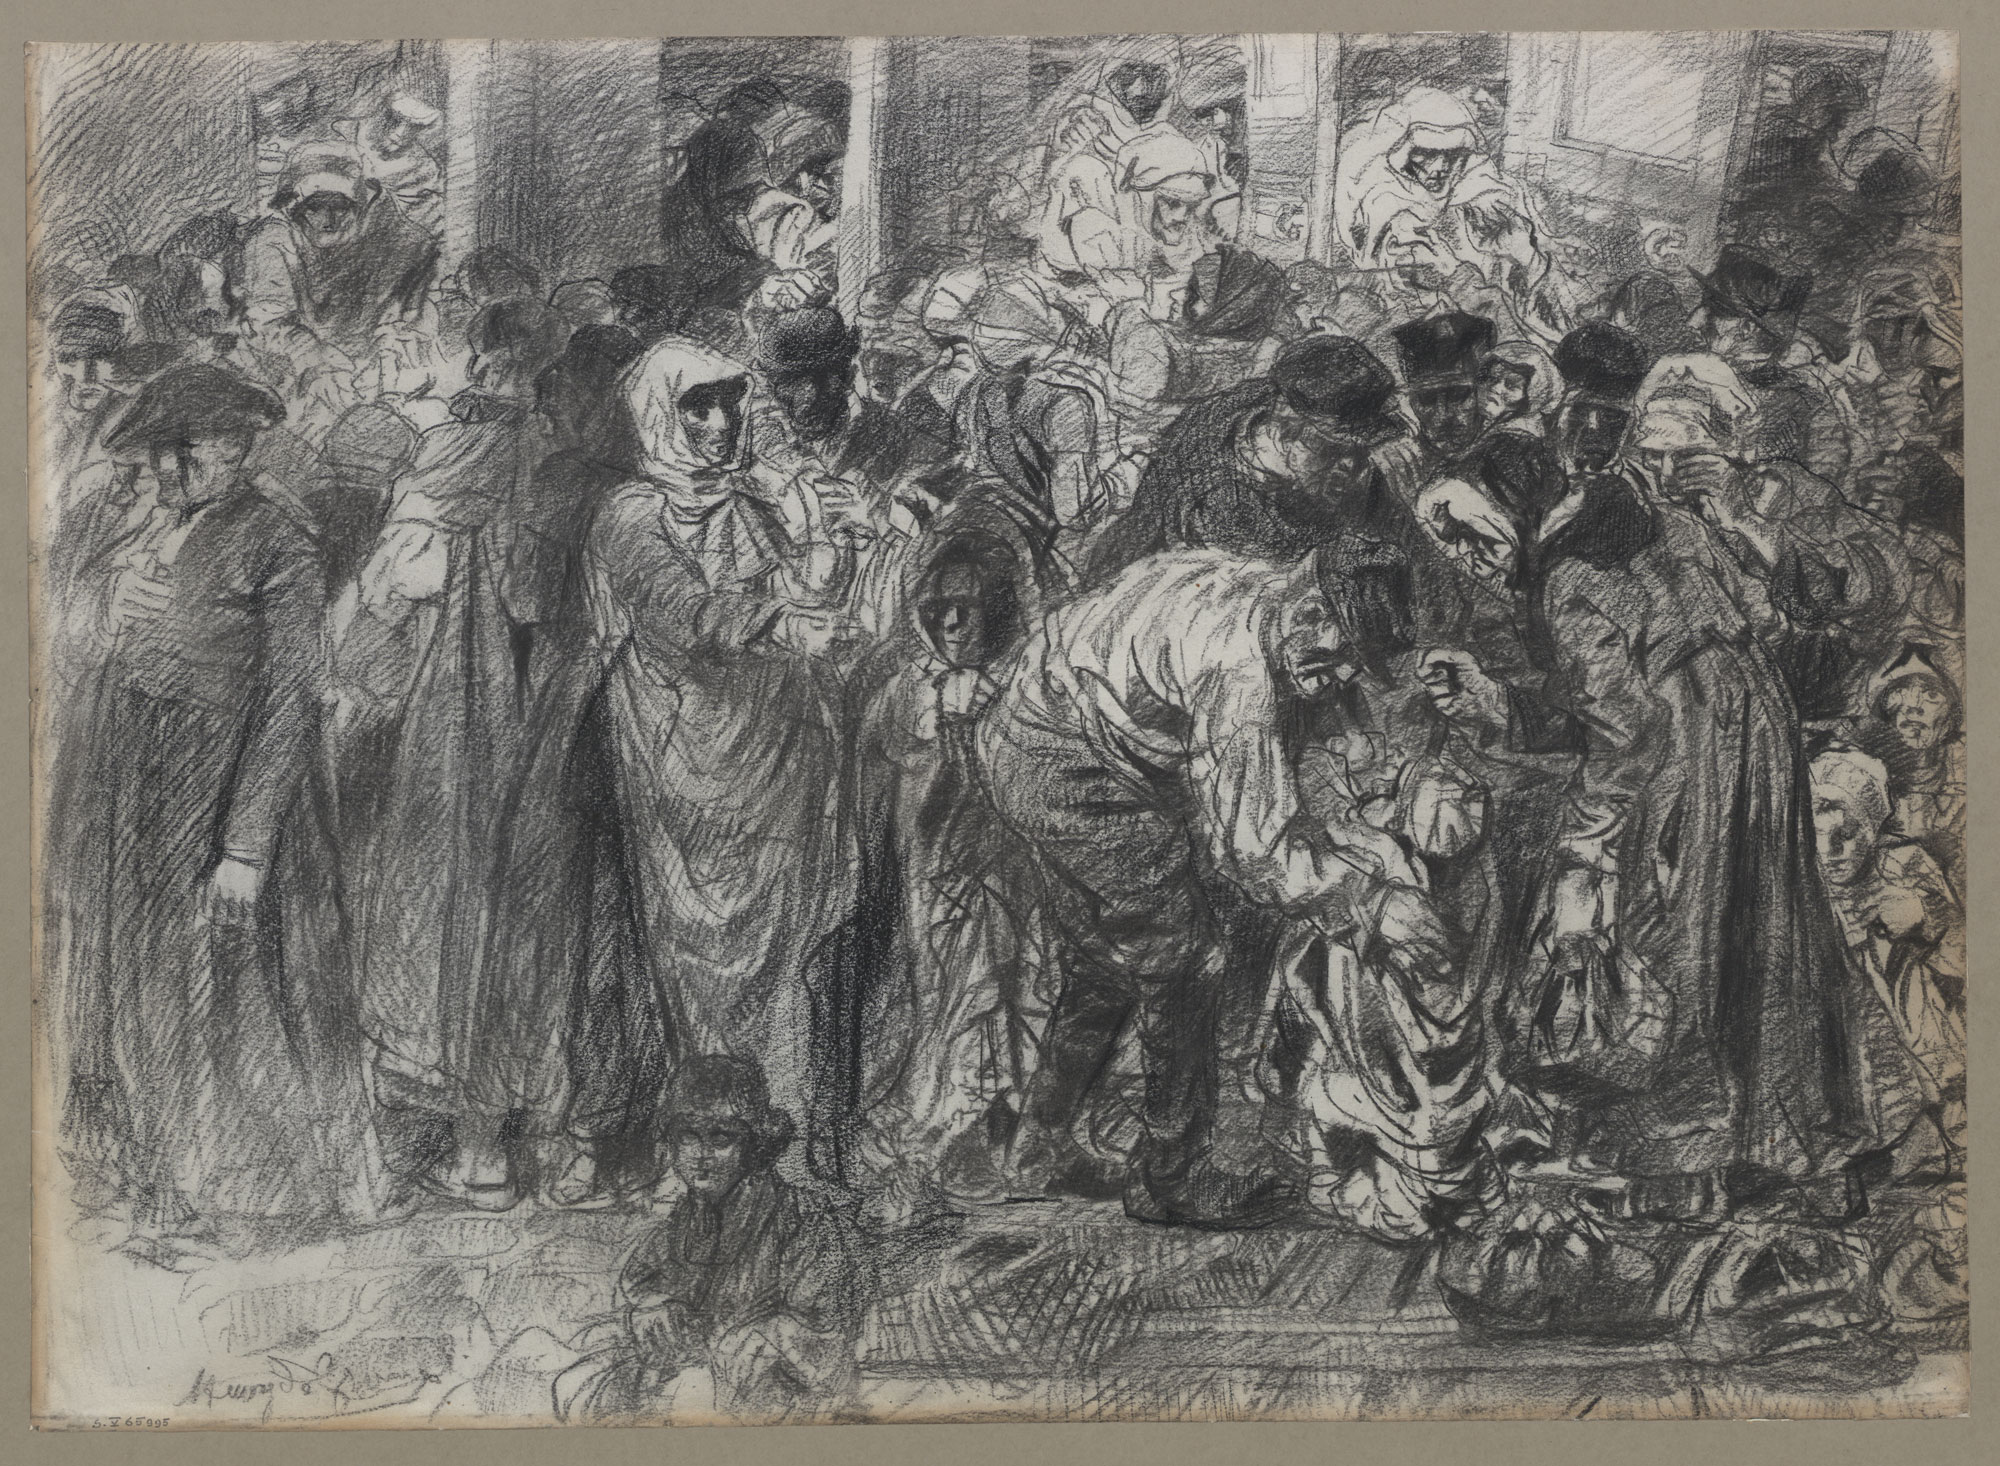 Drawing, by Belgian symbolist painter and sculptor Henry de Groux (1886-1930), shows crowds gathered around a train as it departs to take soldiers to war.